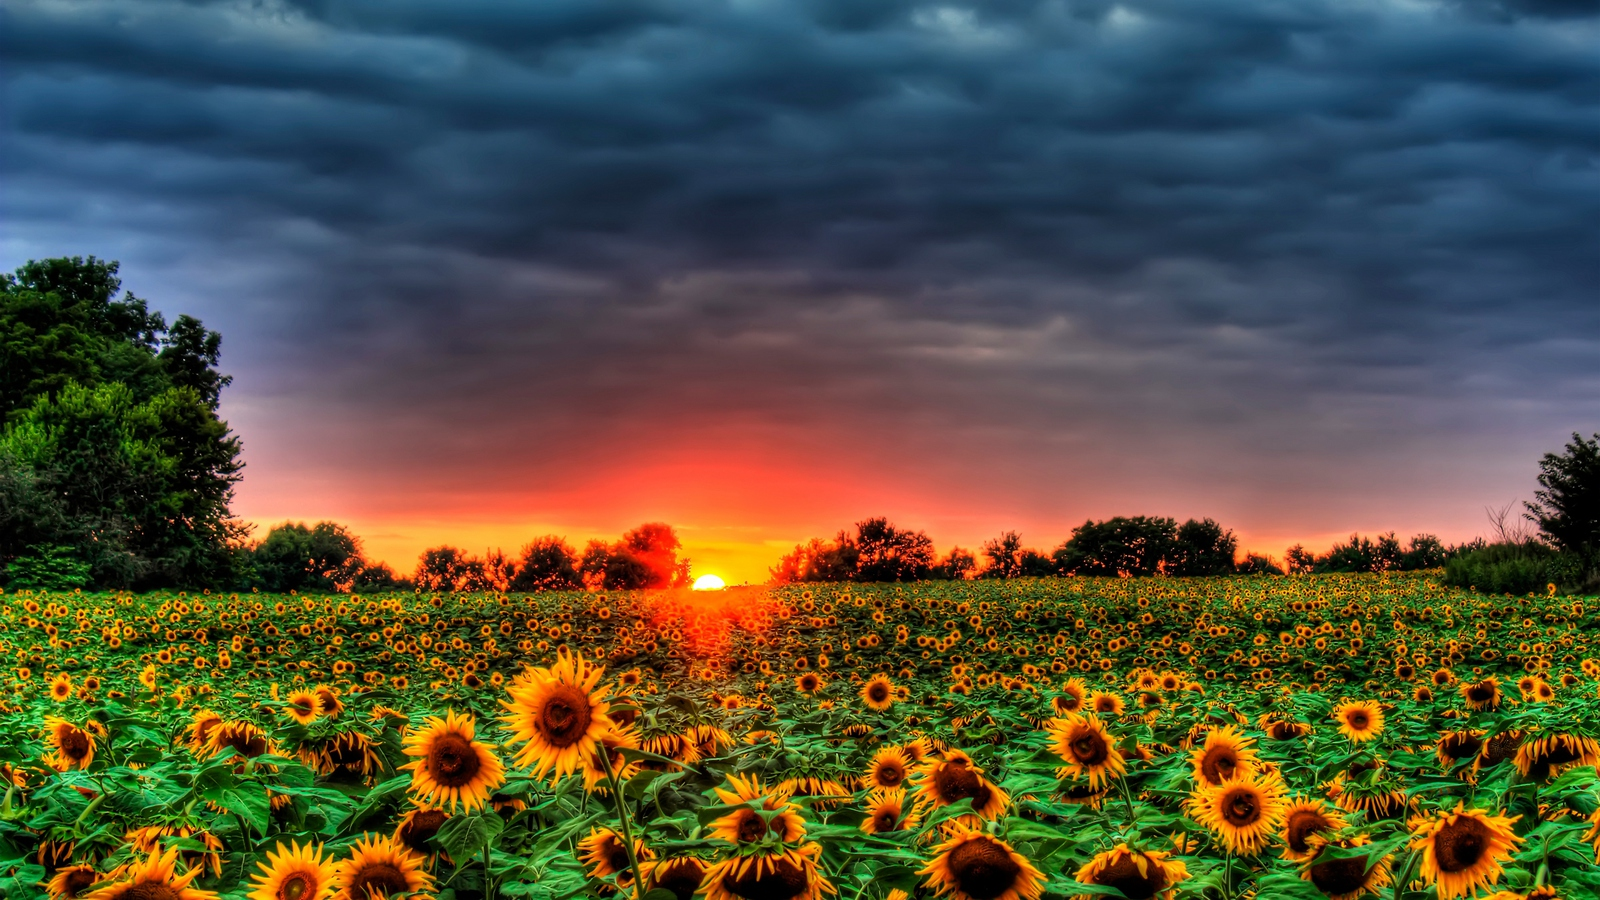 sunflowers galore! wallpaper and background image | 1600x900 | id:430196